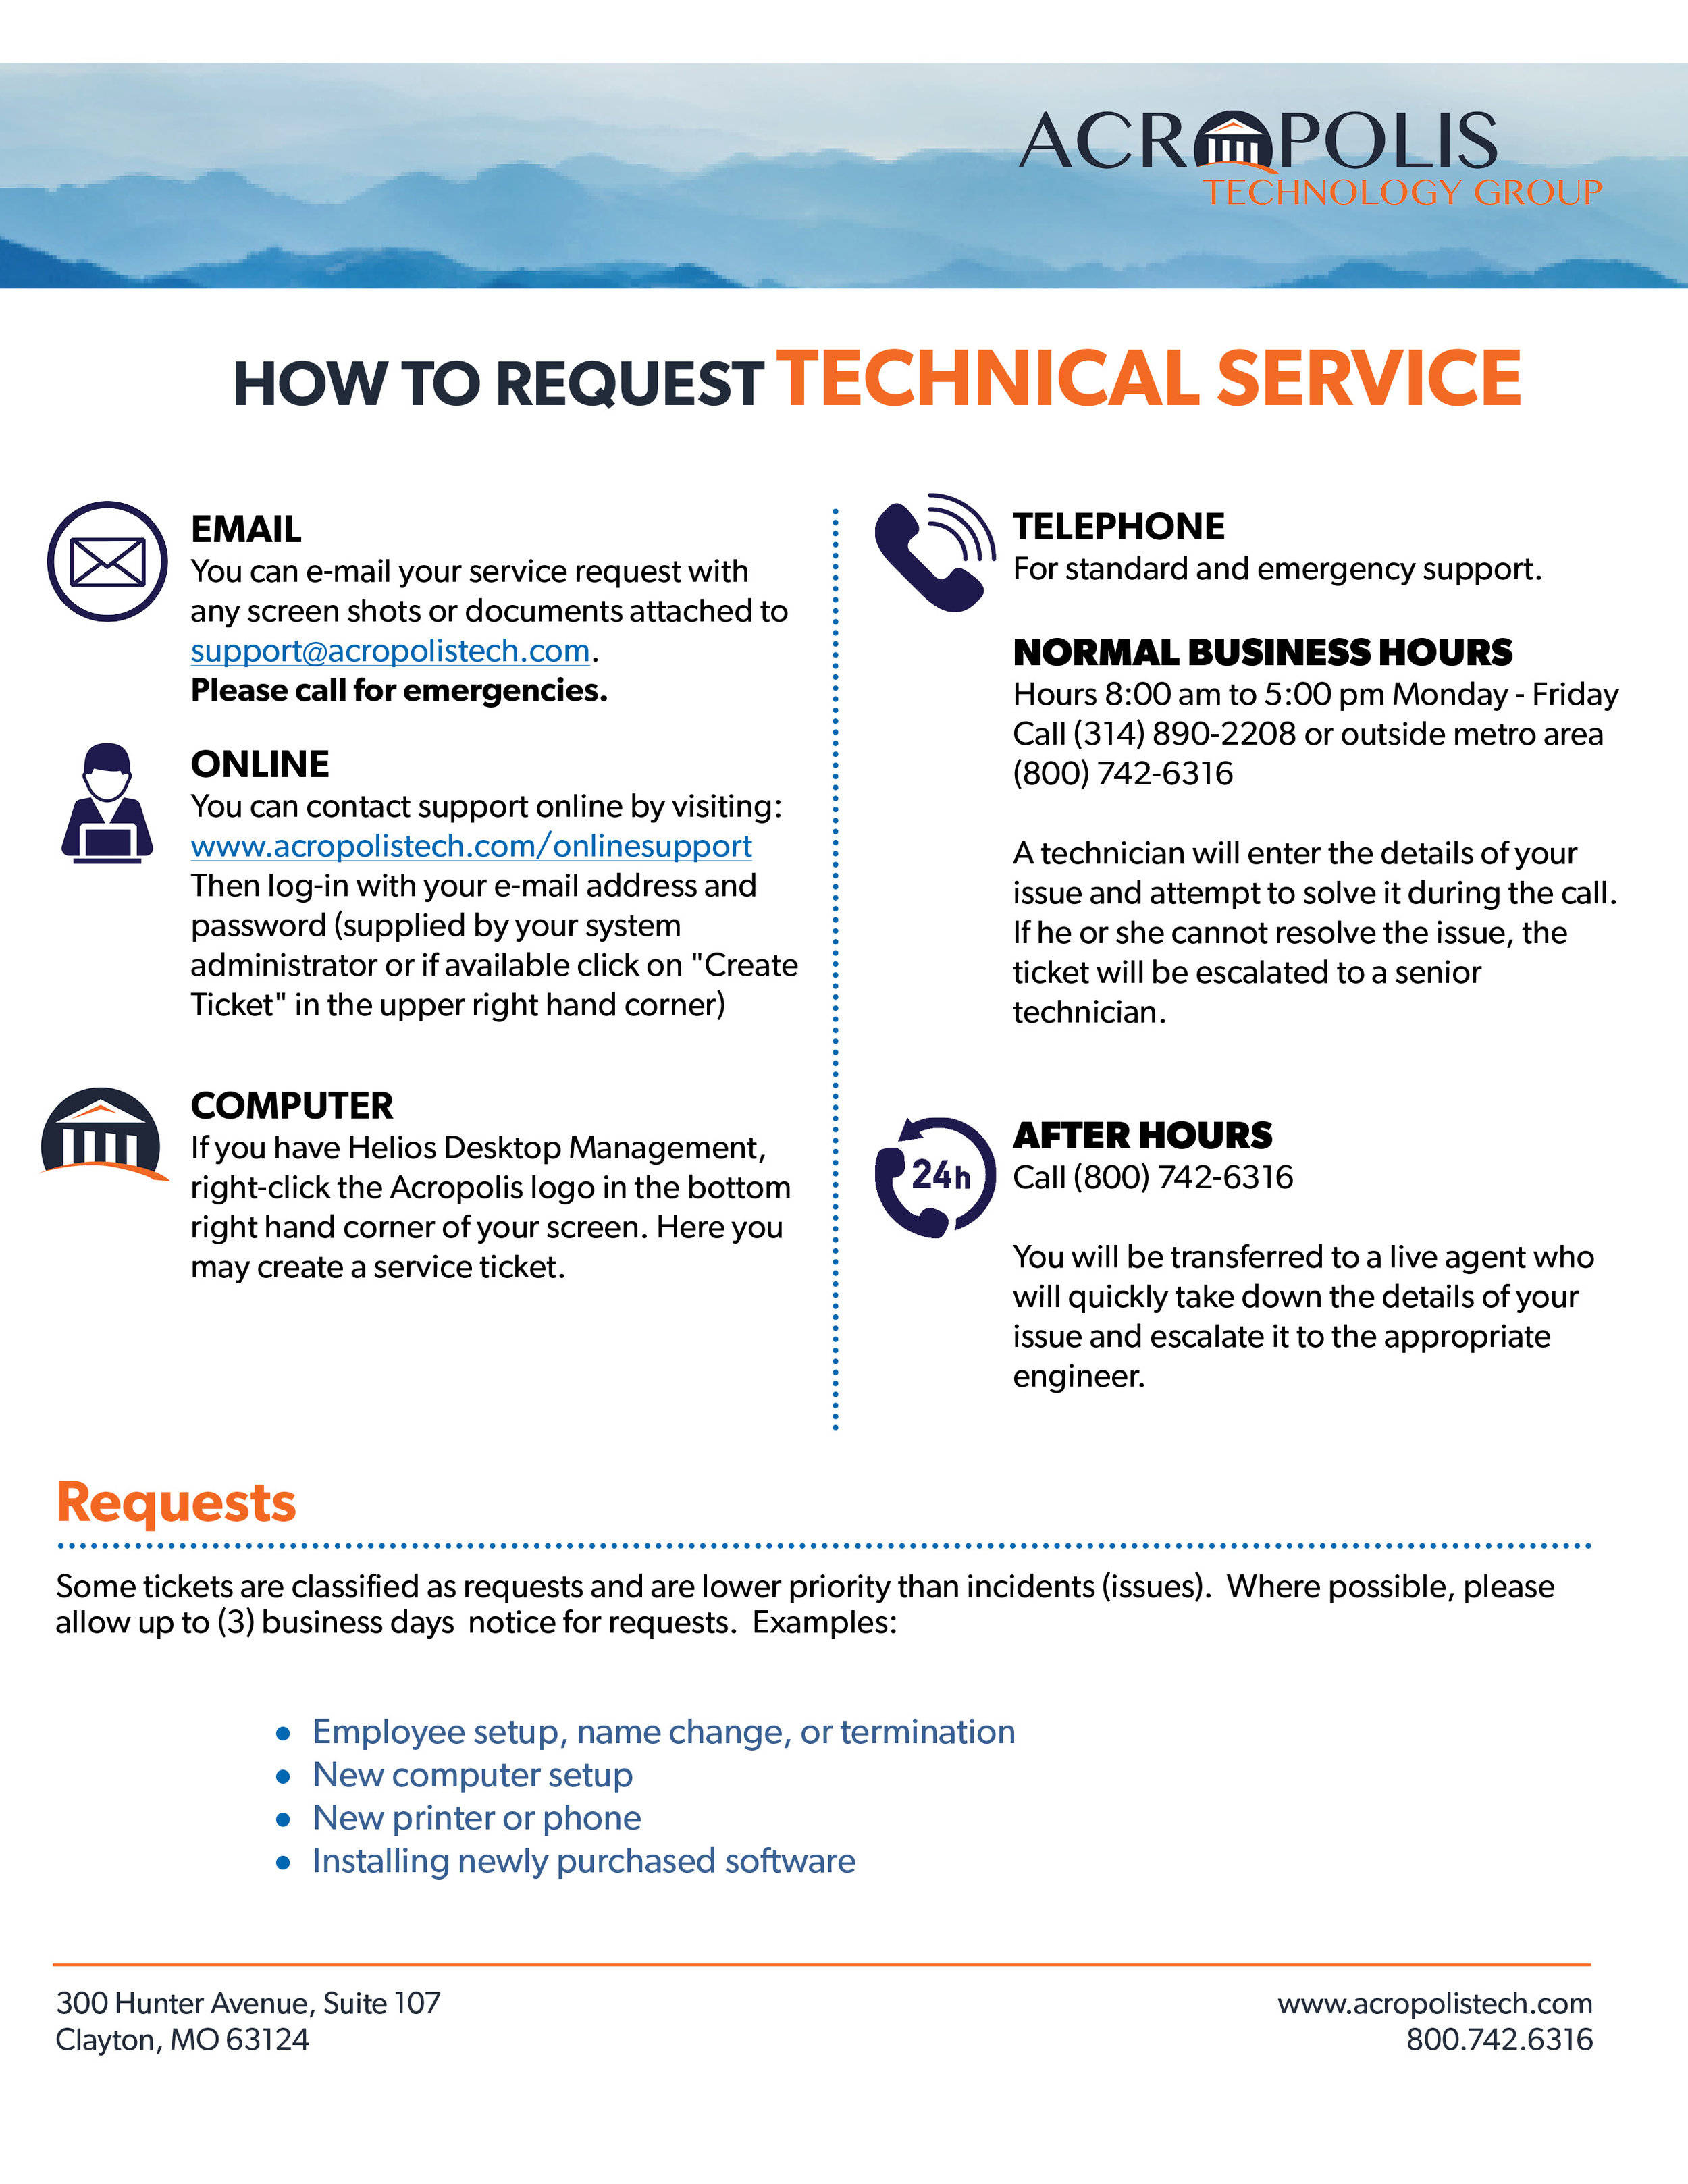 How To Request Service.jpg